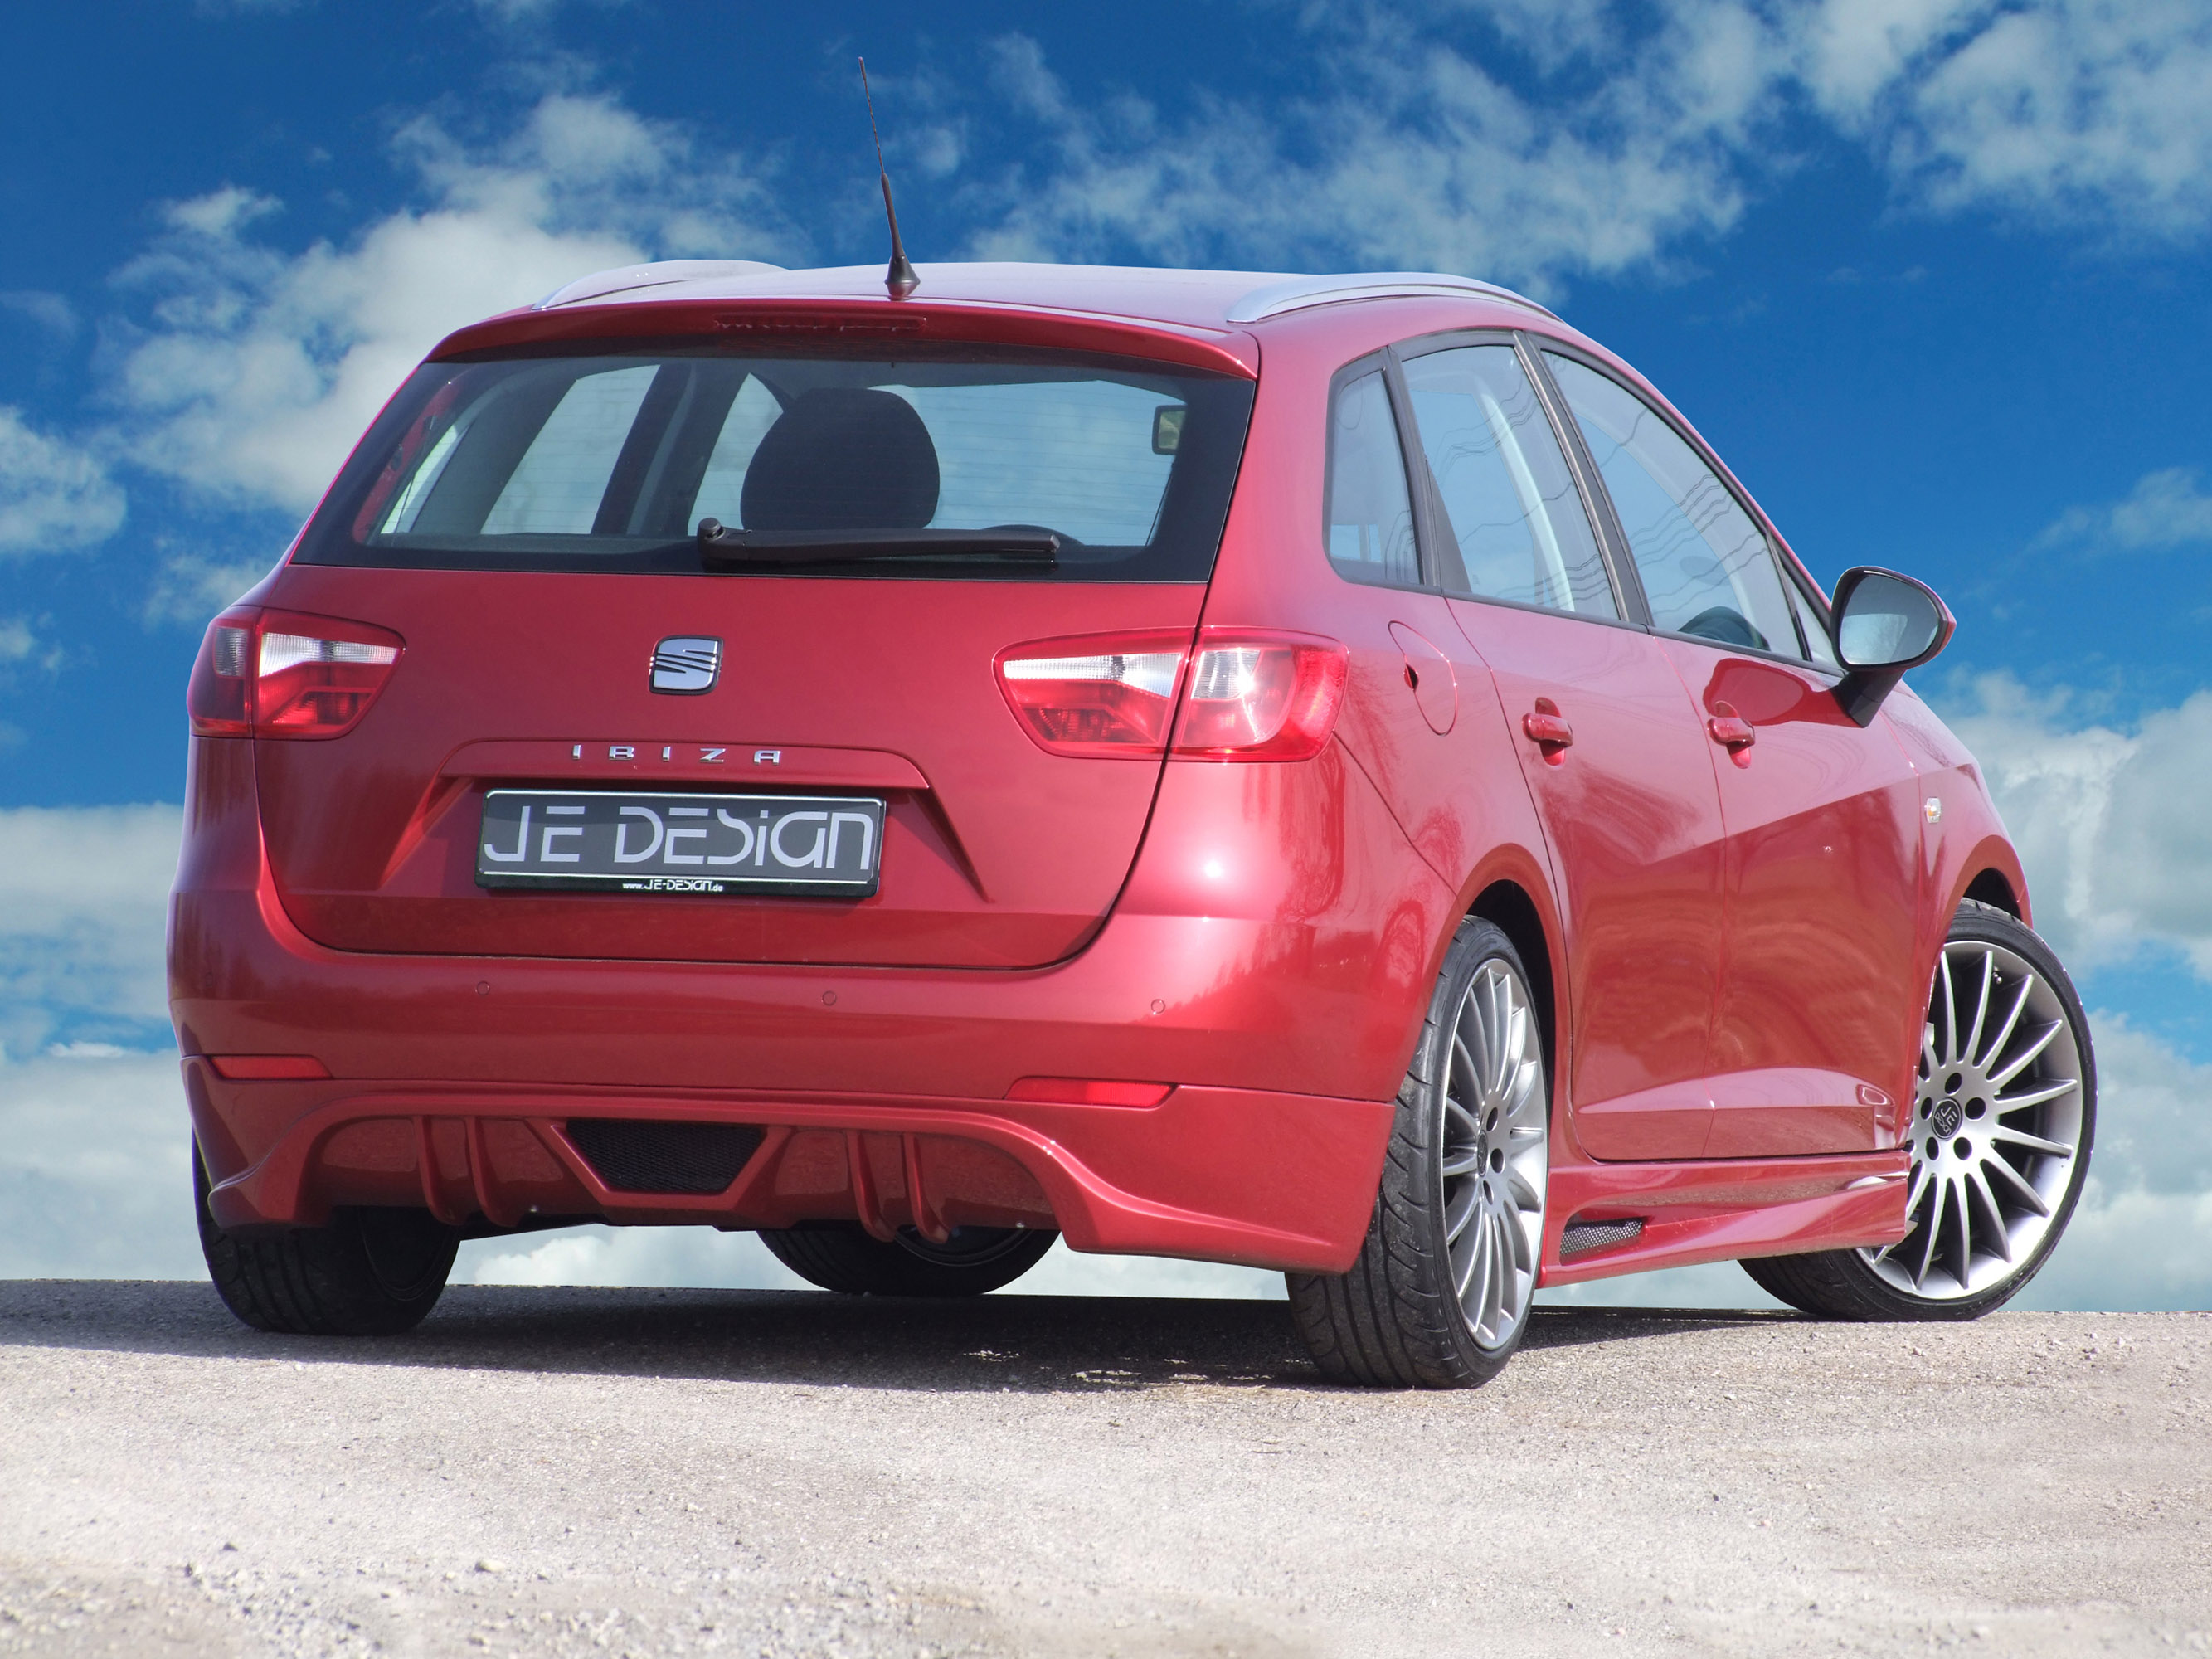 JE DESIGN Seat Ibiza Estate ST photo #2